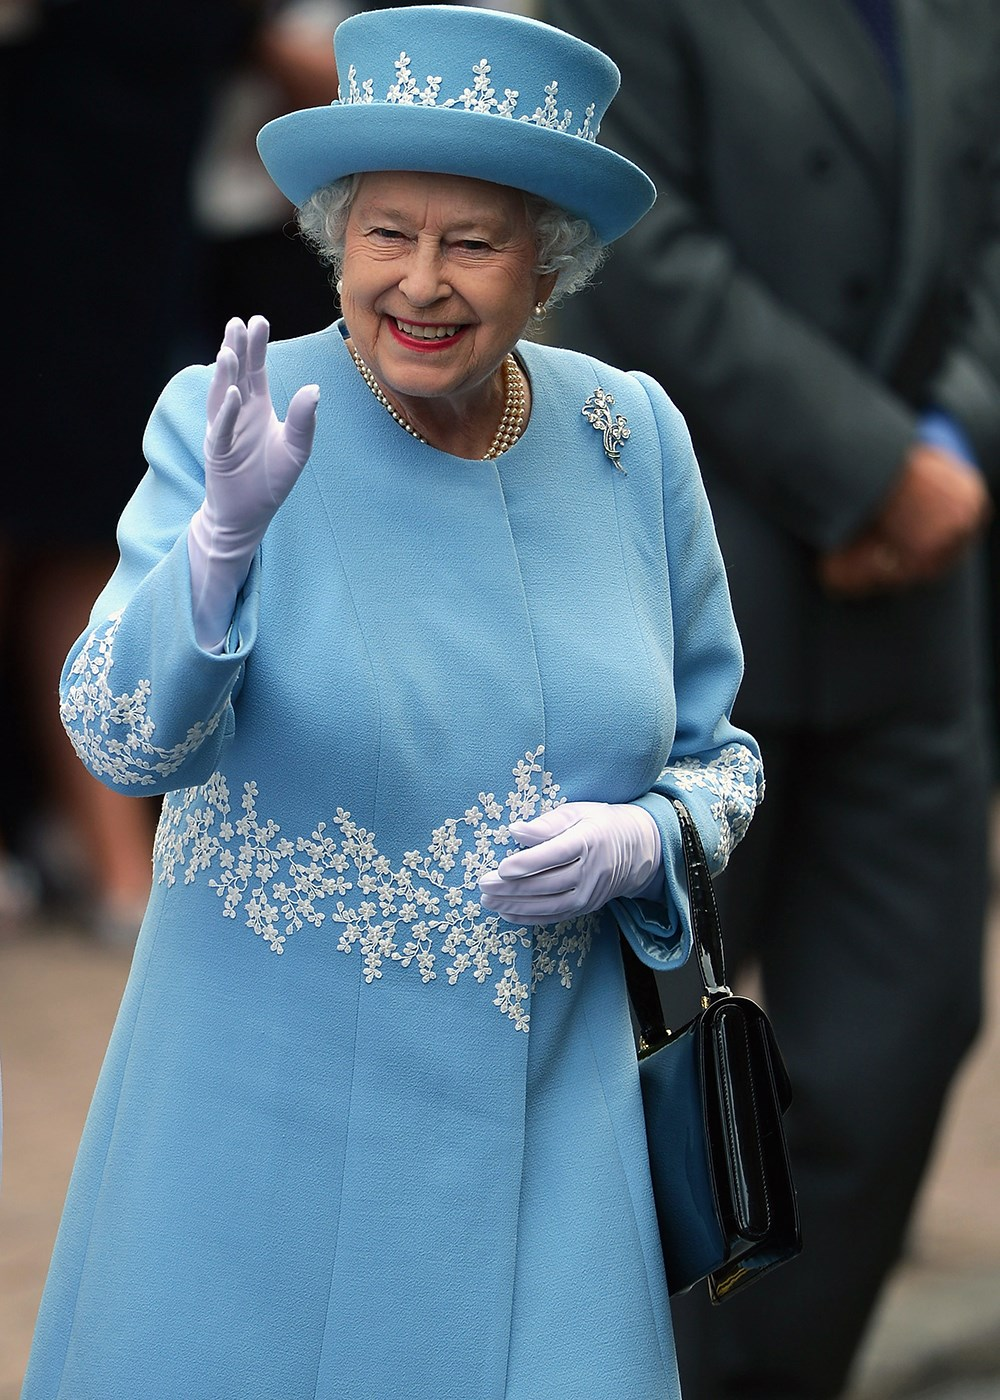 Queen Elizabeth II will supposedly only wear one nail